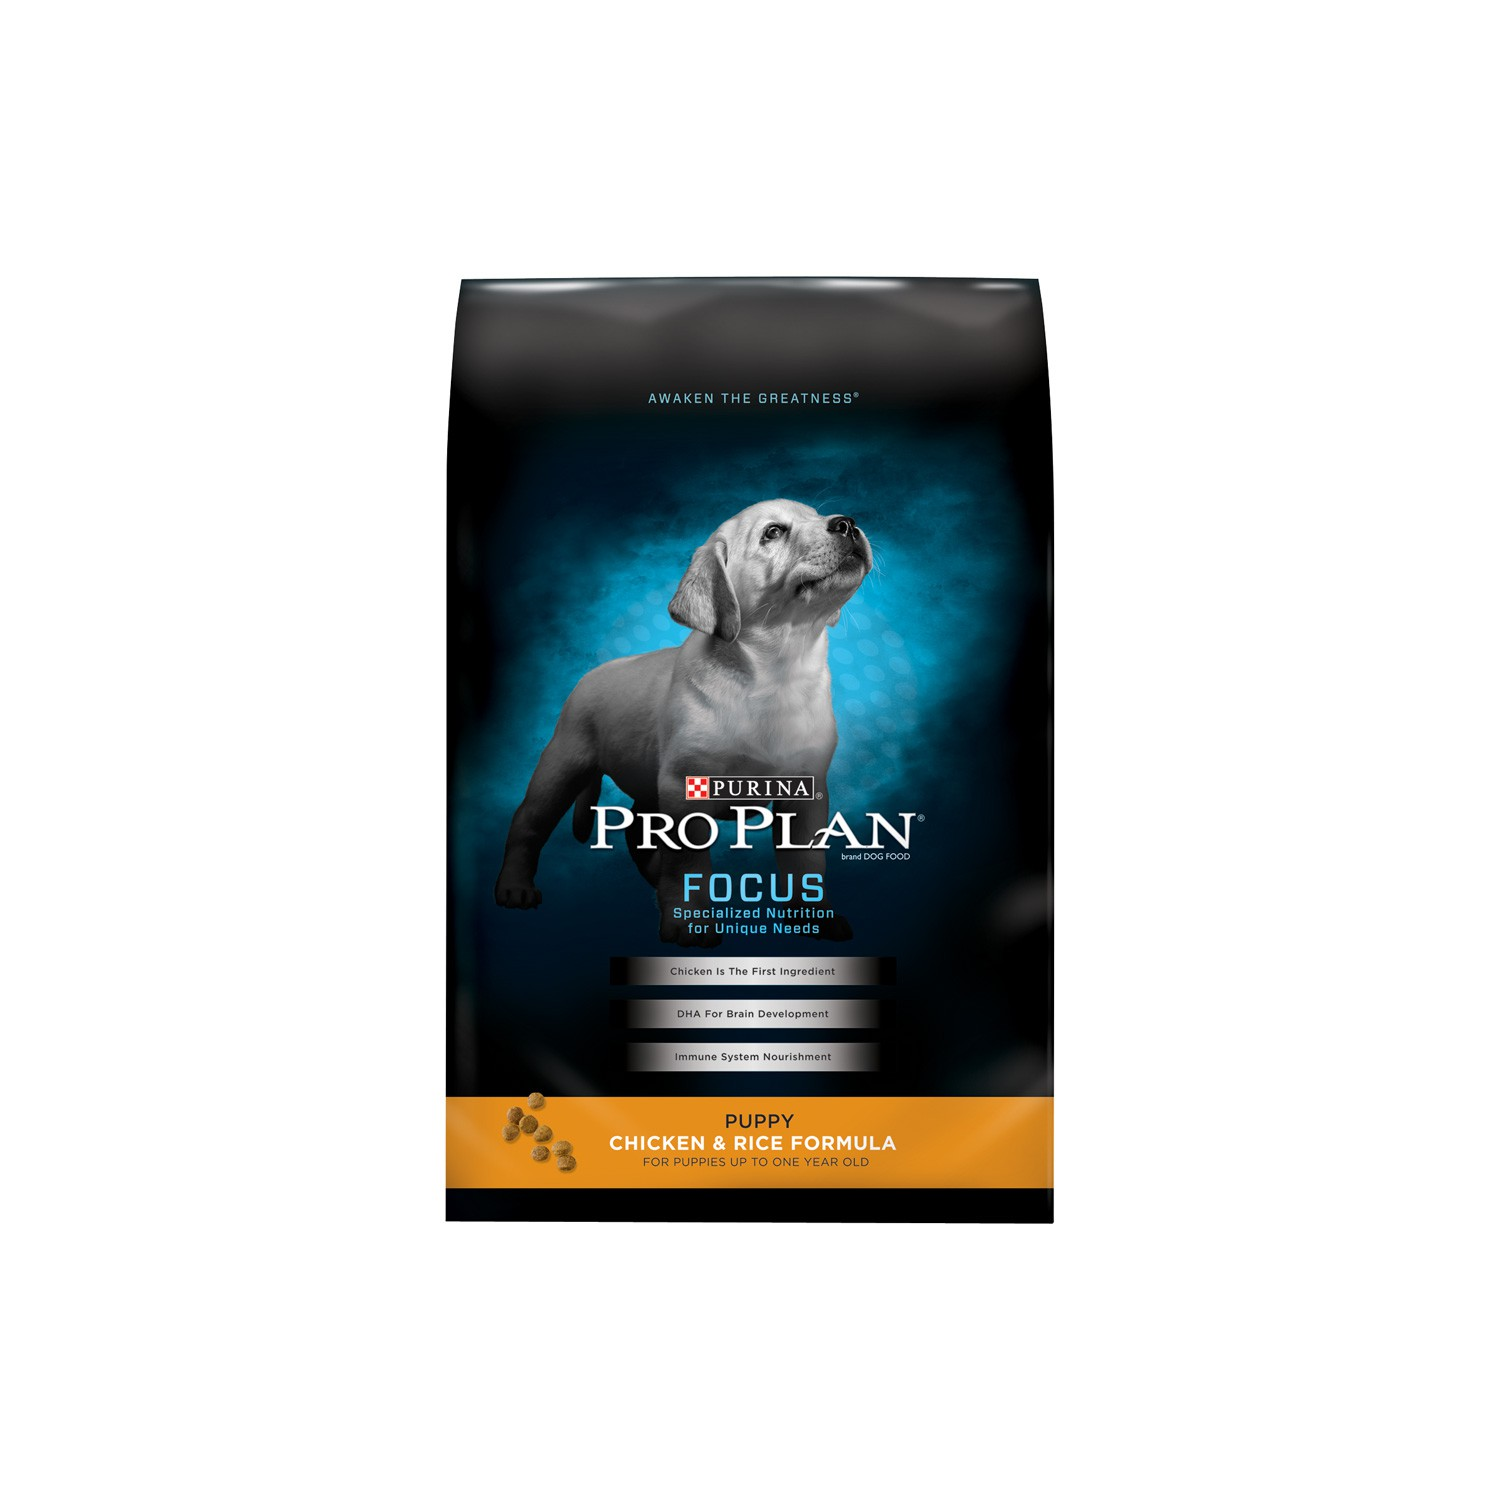 Purina Pro Plan Focus Chicken & Rice Puppy Formula - 34 lb